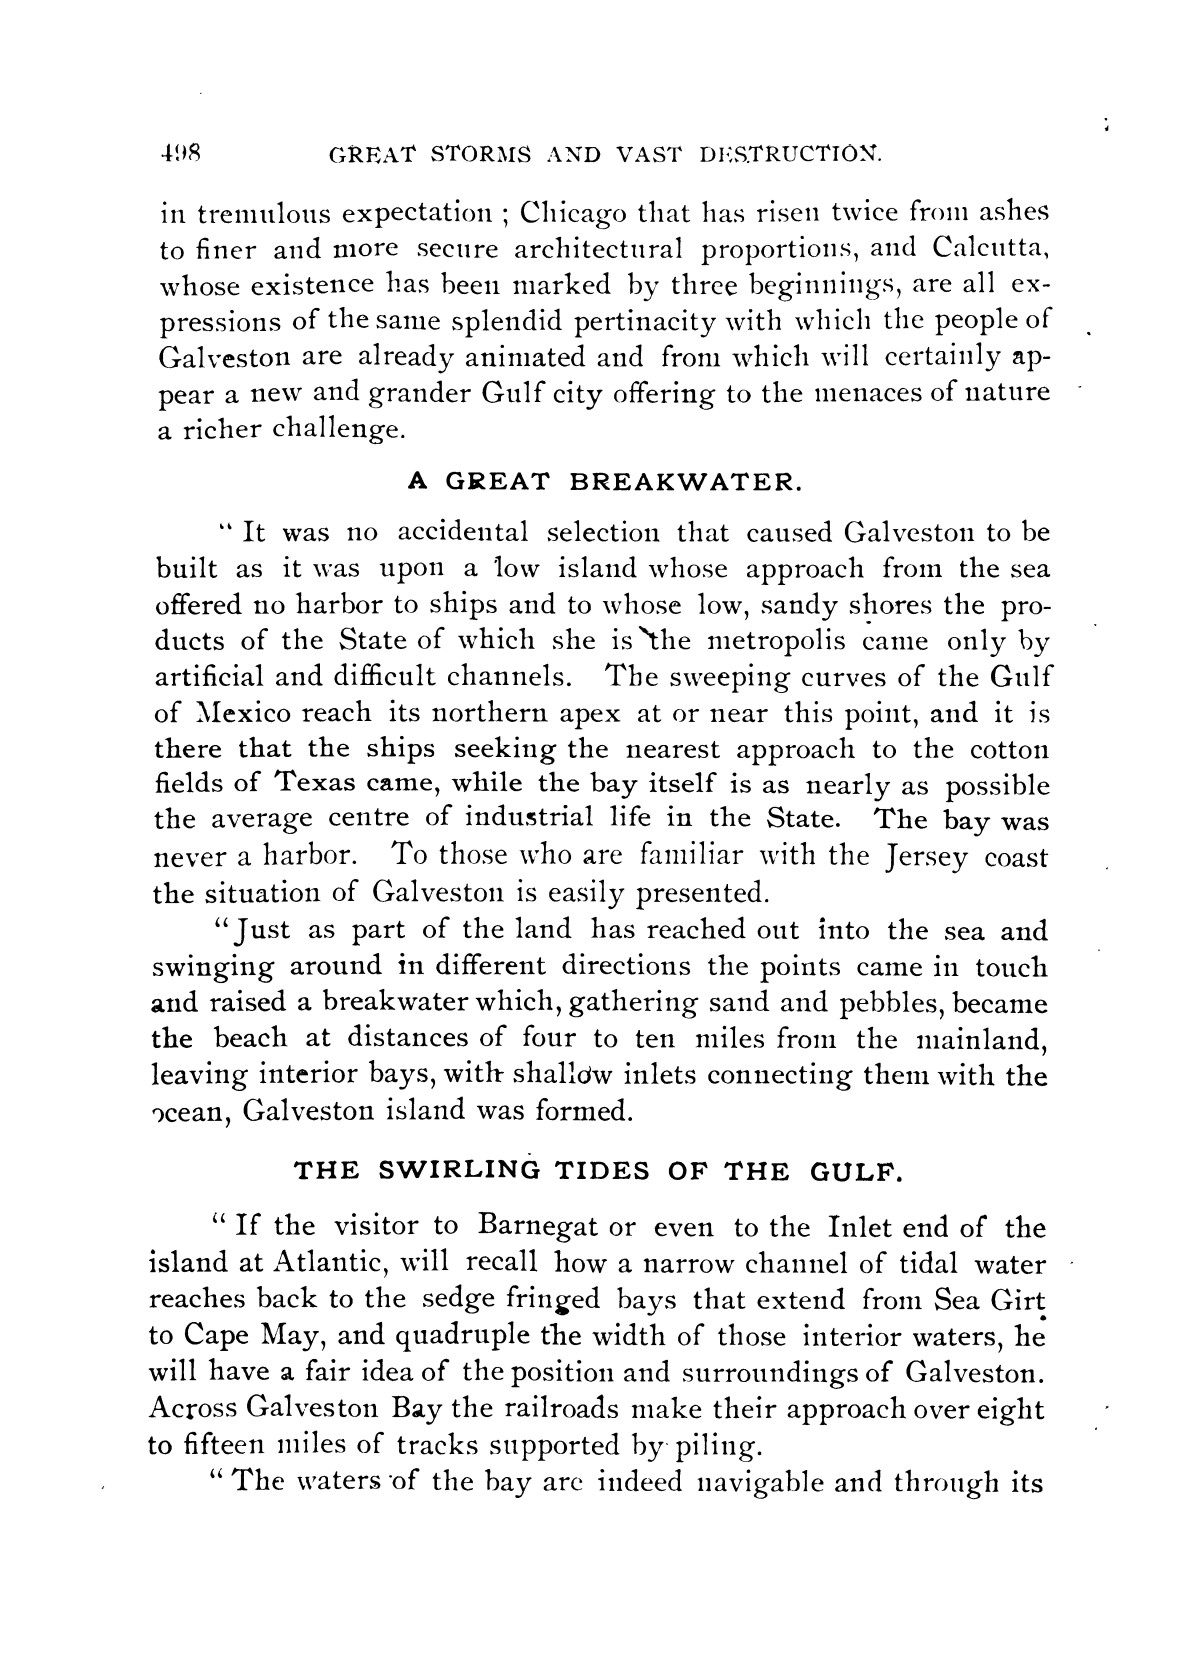 The Great Galveston Disaster, Containing a Full and Thrilling Account of the Most Appalling Calamity of Modern Times                                                                                                      498